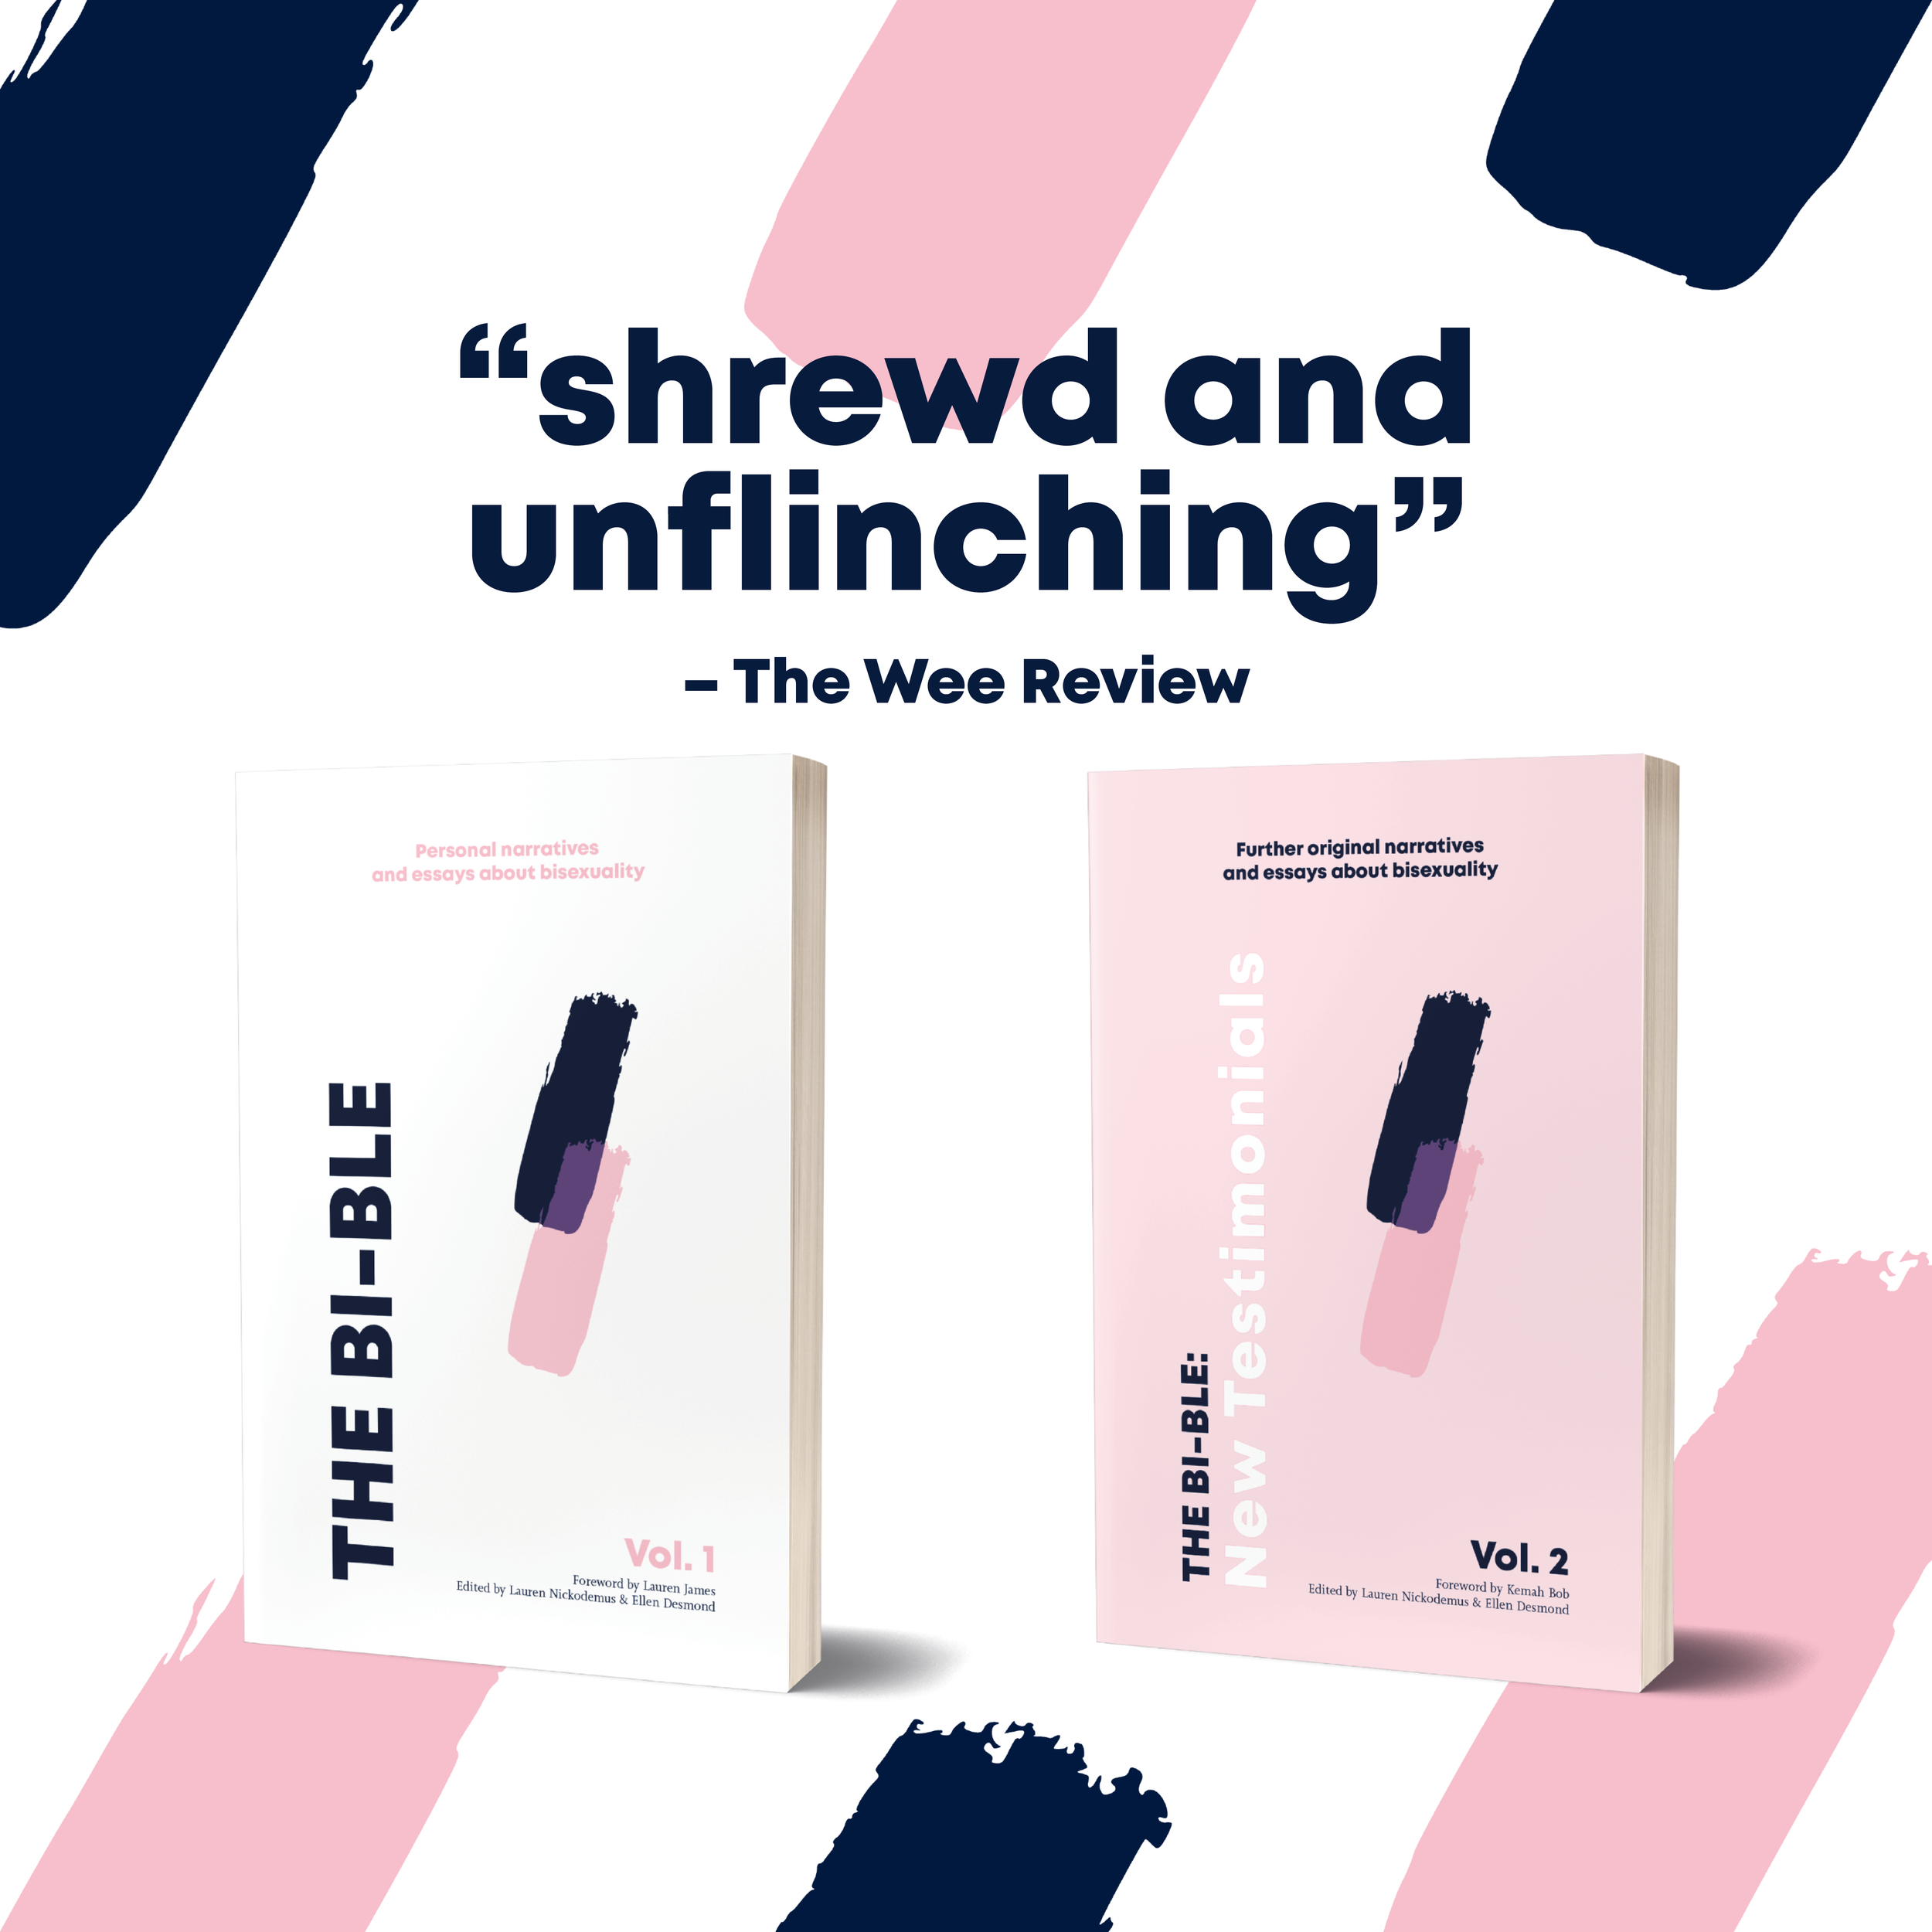 Available Now! - The Bi-ble: Volume One is back, along with a brand new Volume Two: New Testimonials! Get them now on our shop.